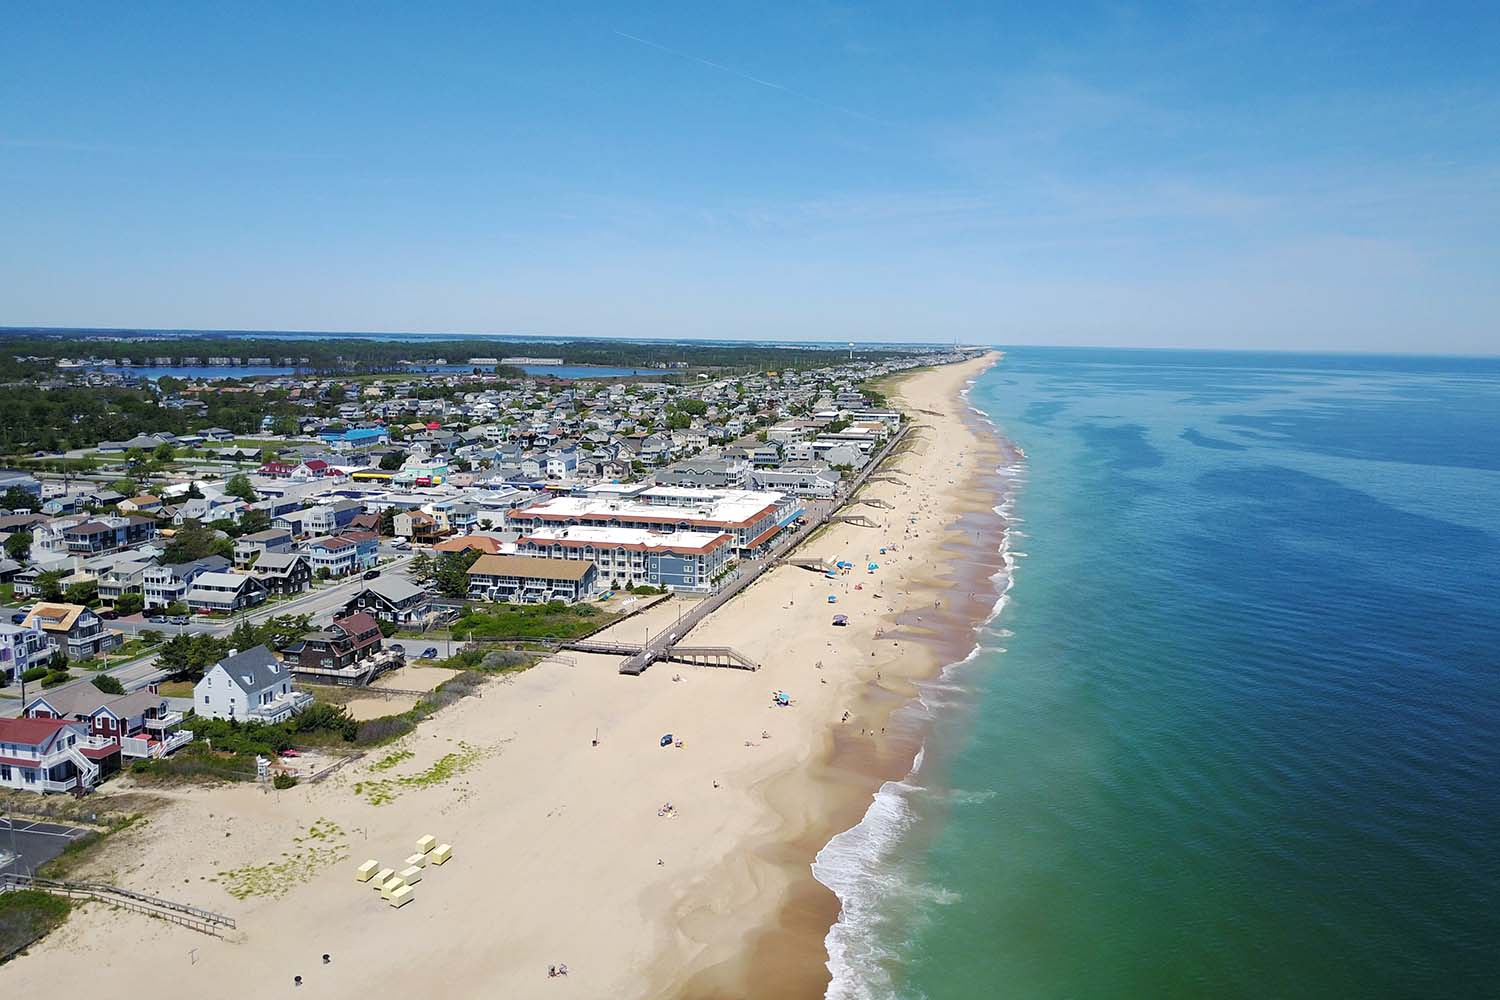 Aerial view of Bethany Beach in Delaware, USA